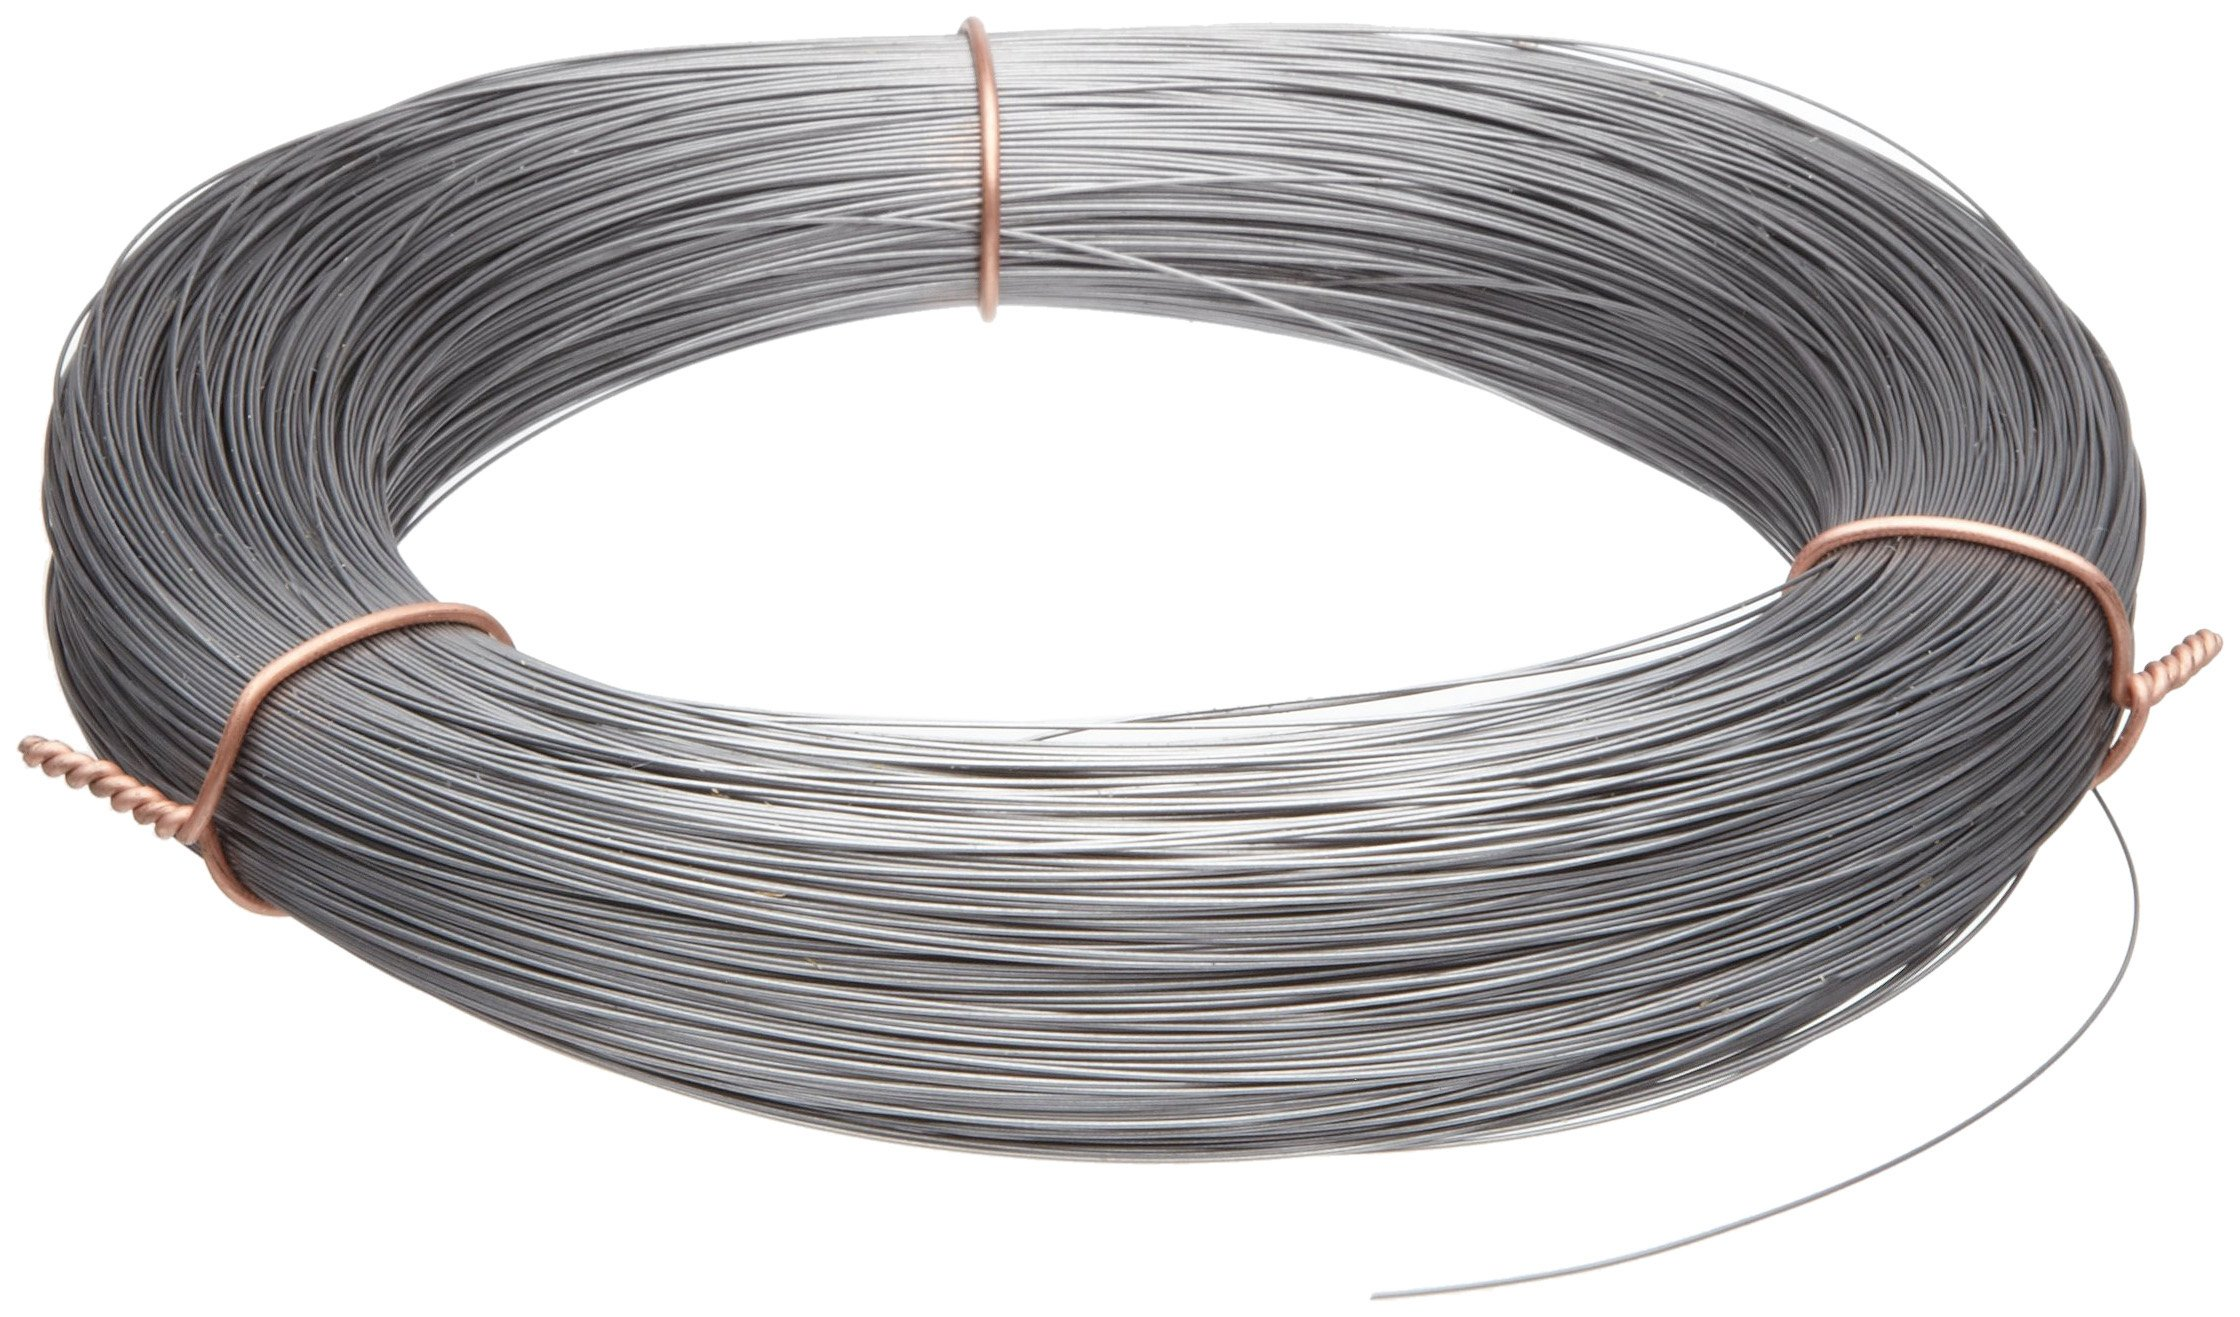 High Carbon Steel Wire, Mill Finish #2B (Smooth) Finish, Grade #2B Smooth, Full Hard Temper, Meets ASTM A228 Specifications, 0.100'' Diameter, 37' Length, Precision